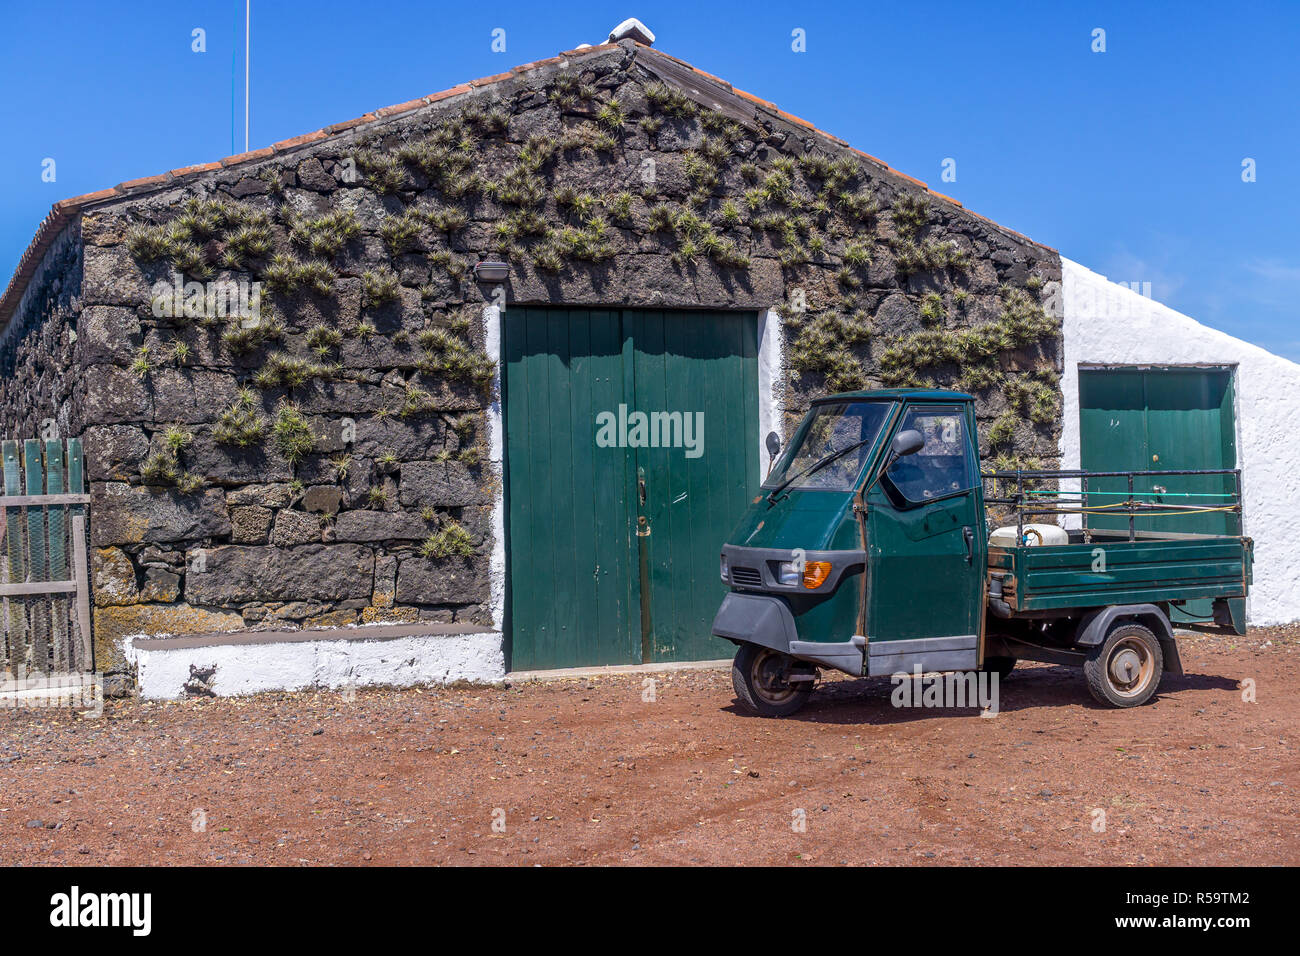 Building used for storing and making wine with a small, old utility vehicle parked in front. Pico Island, Azores, Portugal - Stock Image